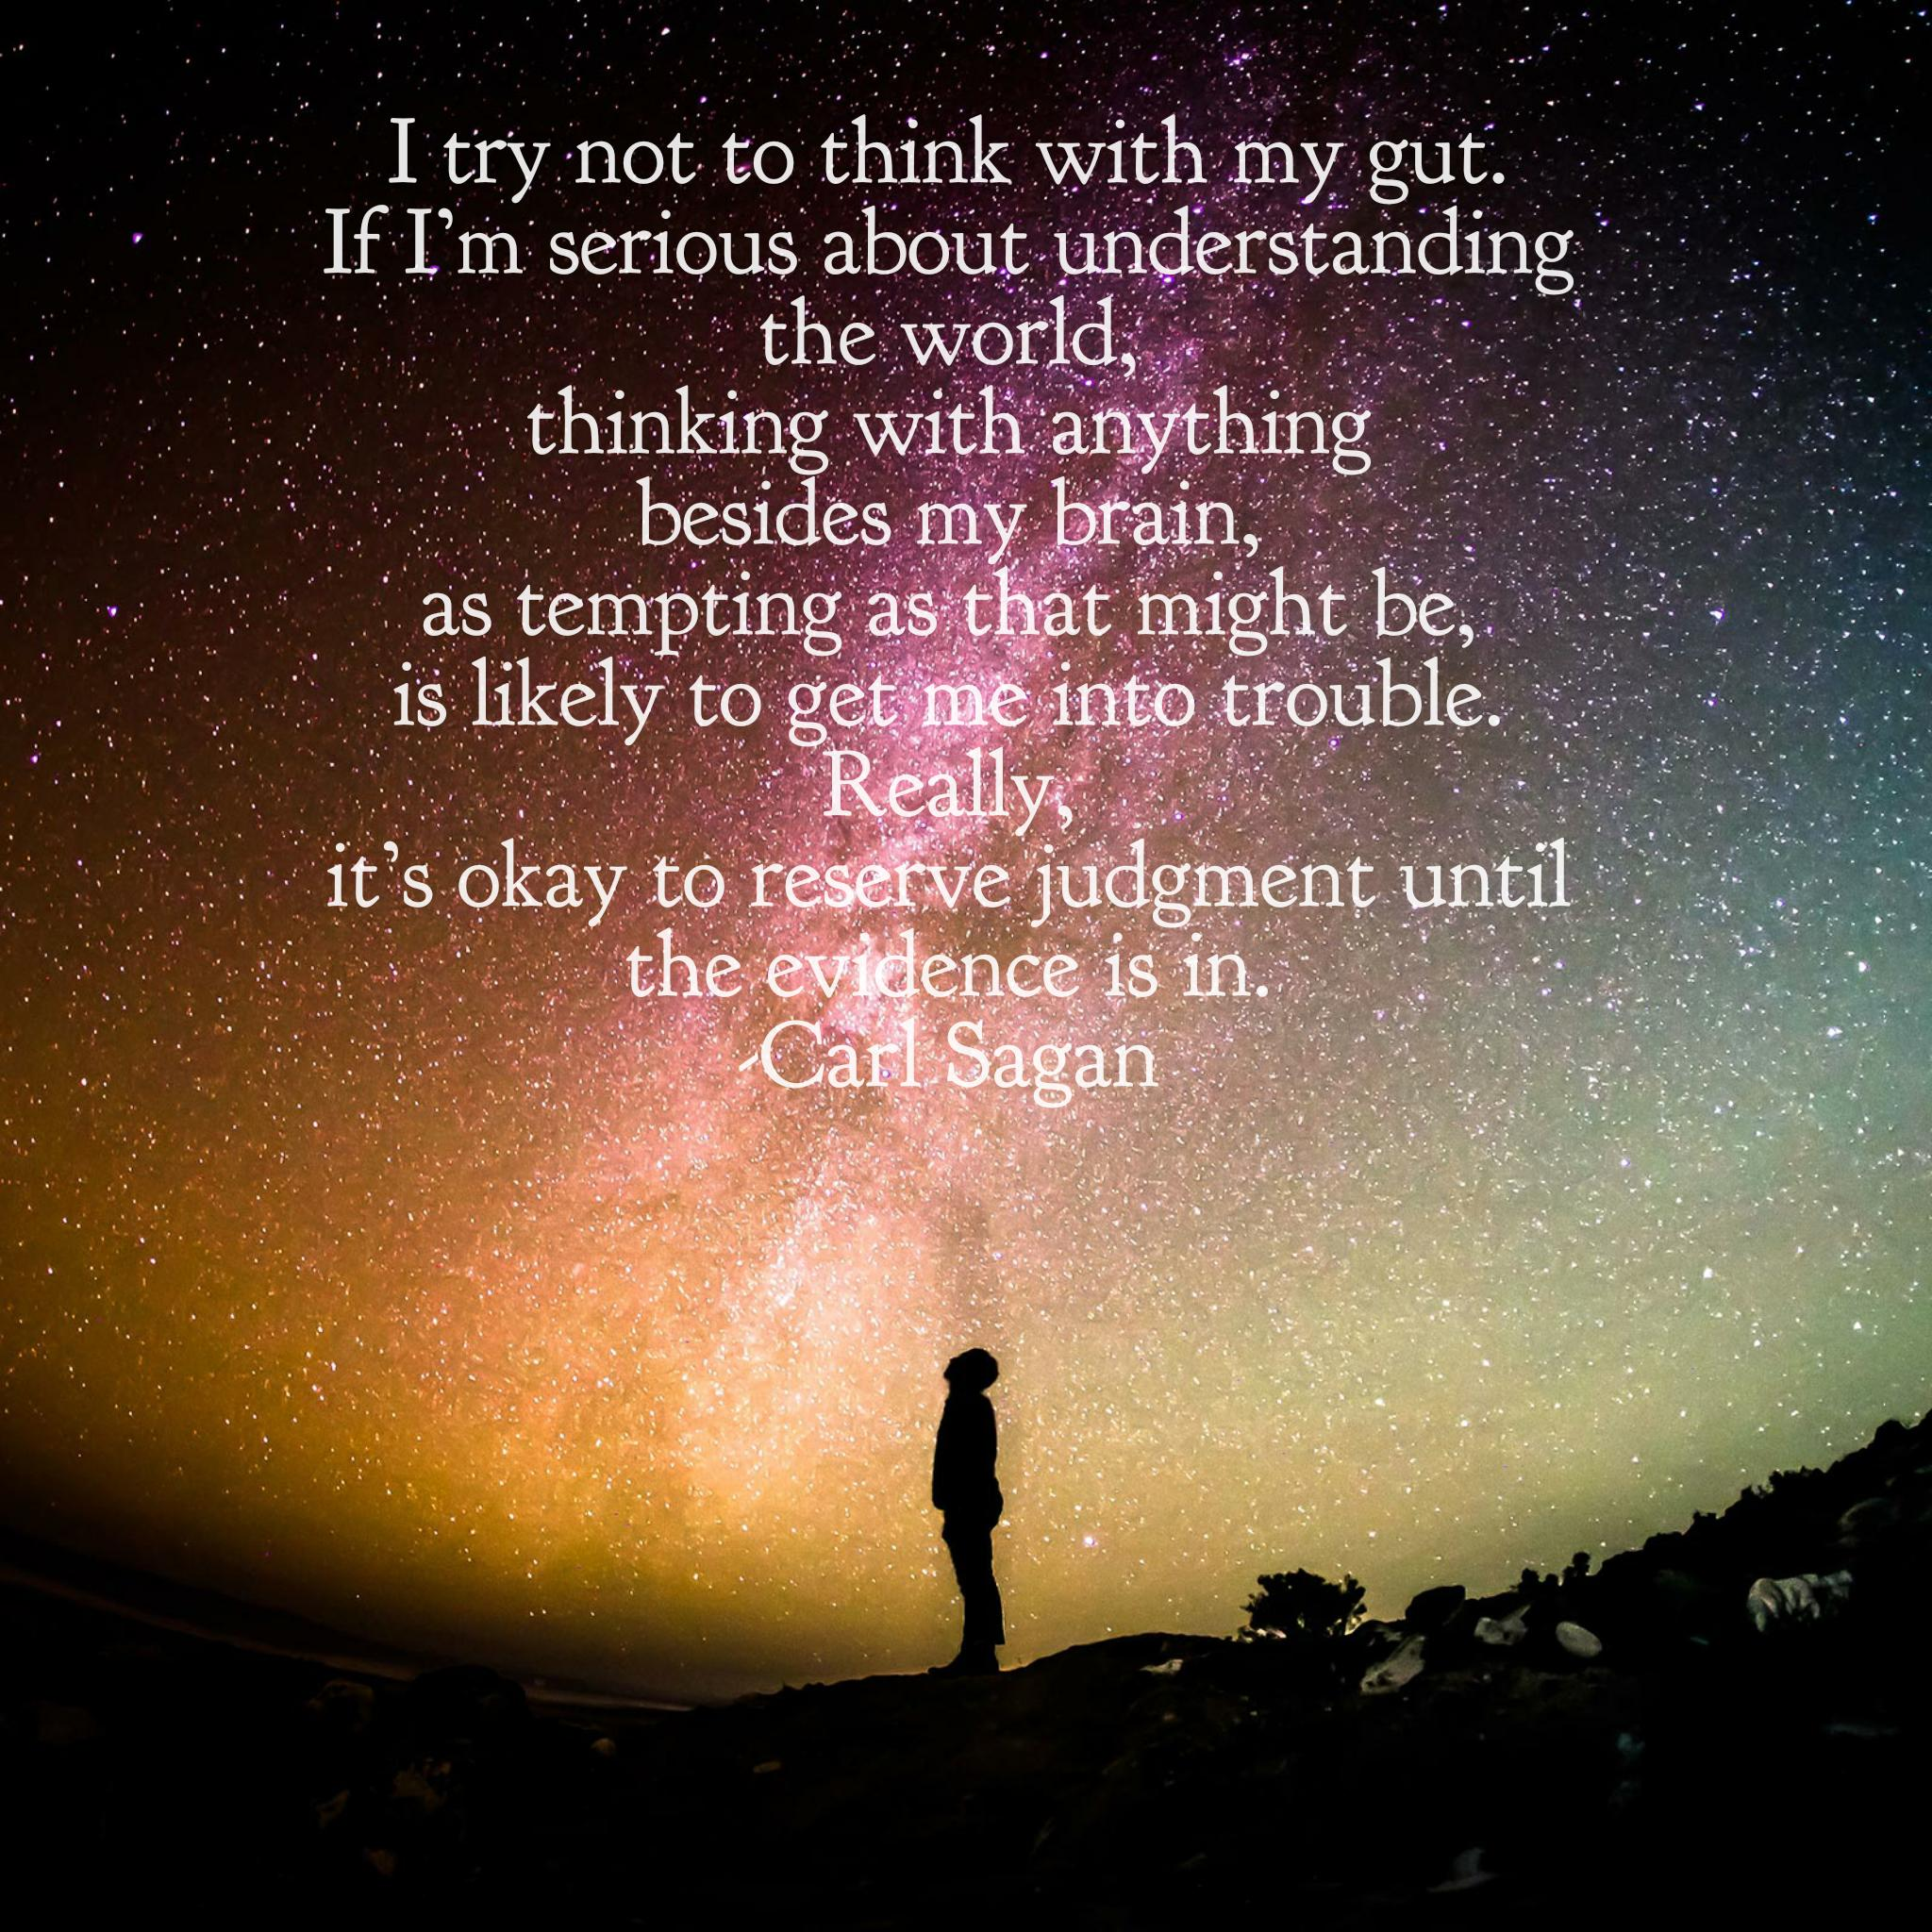 """I try not to think with my gut. If I'm serious about understanding the world, thinking with anything besides my brain, as tempting as that might be, is likely to get me into trouble. Really, it's okay to reserve judgement until the evidence is in."" -Carl Sagan [2048×2048][OC]"